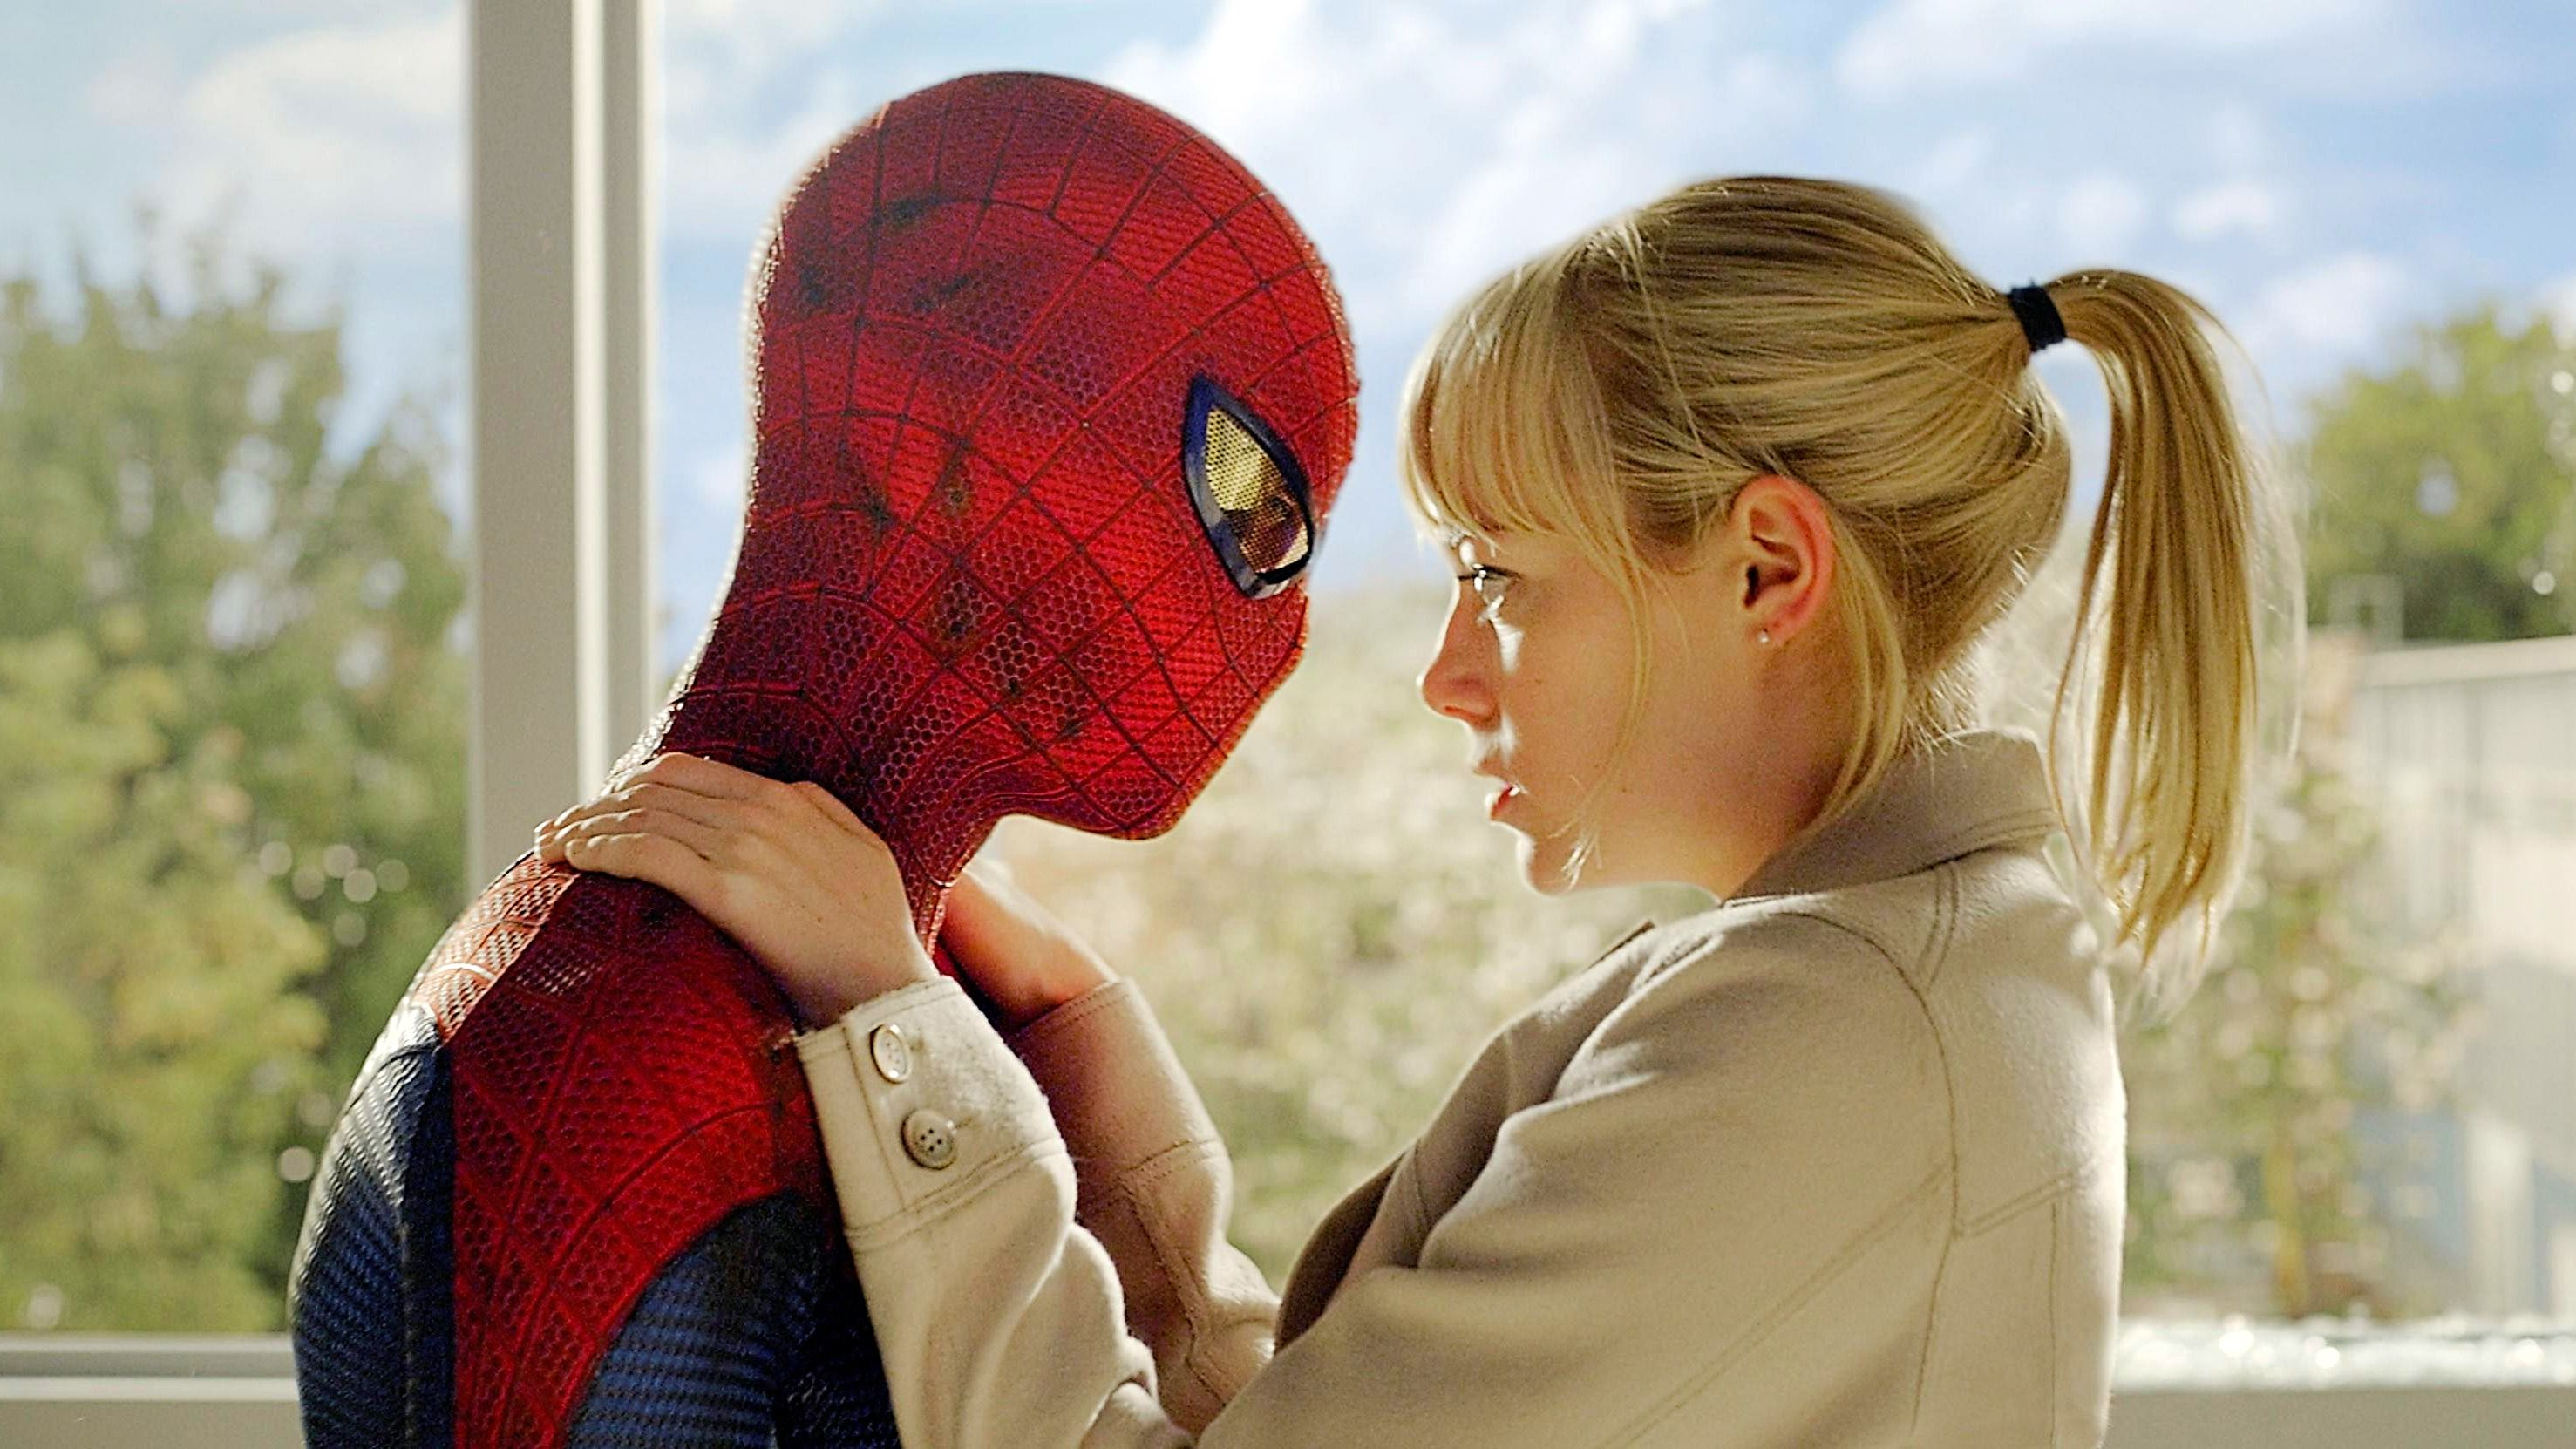 Cool Spider Guy Gwen Stacy Is The Love Rate Of Interest For Peter